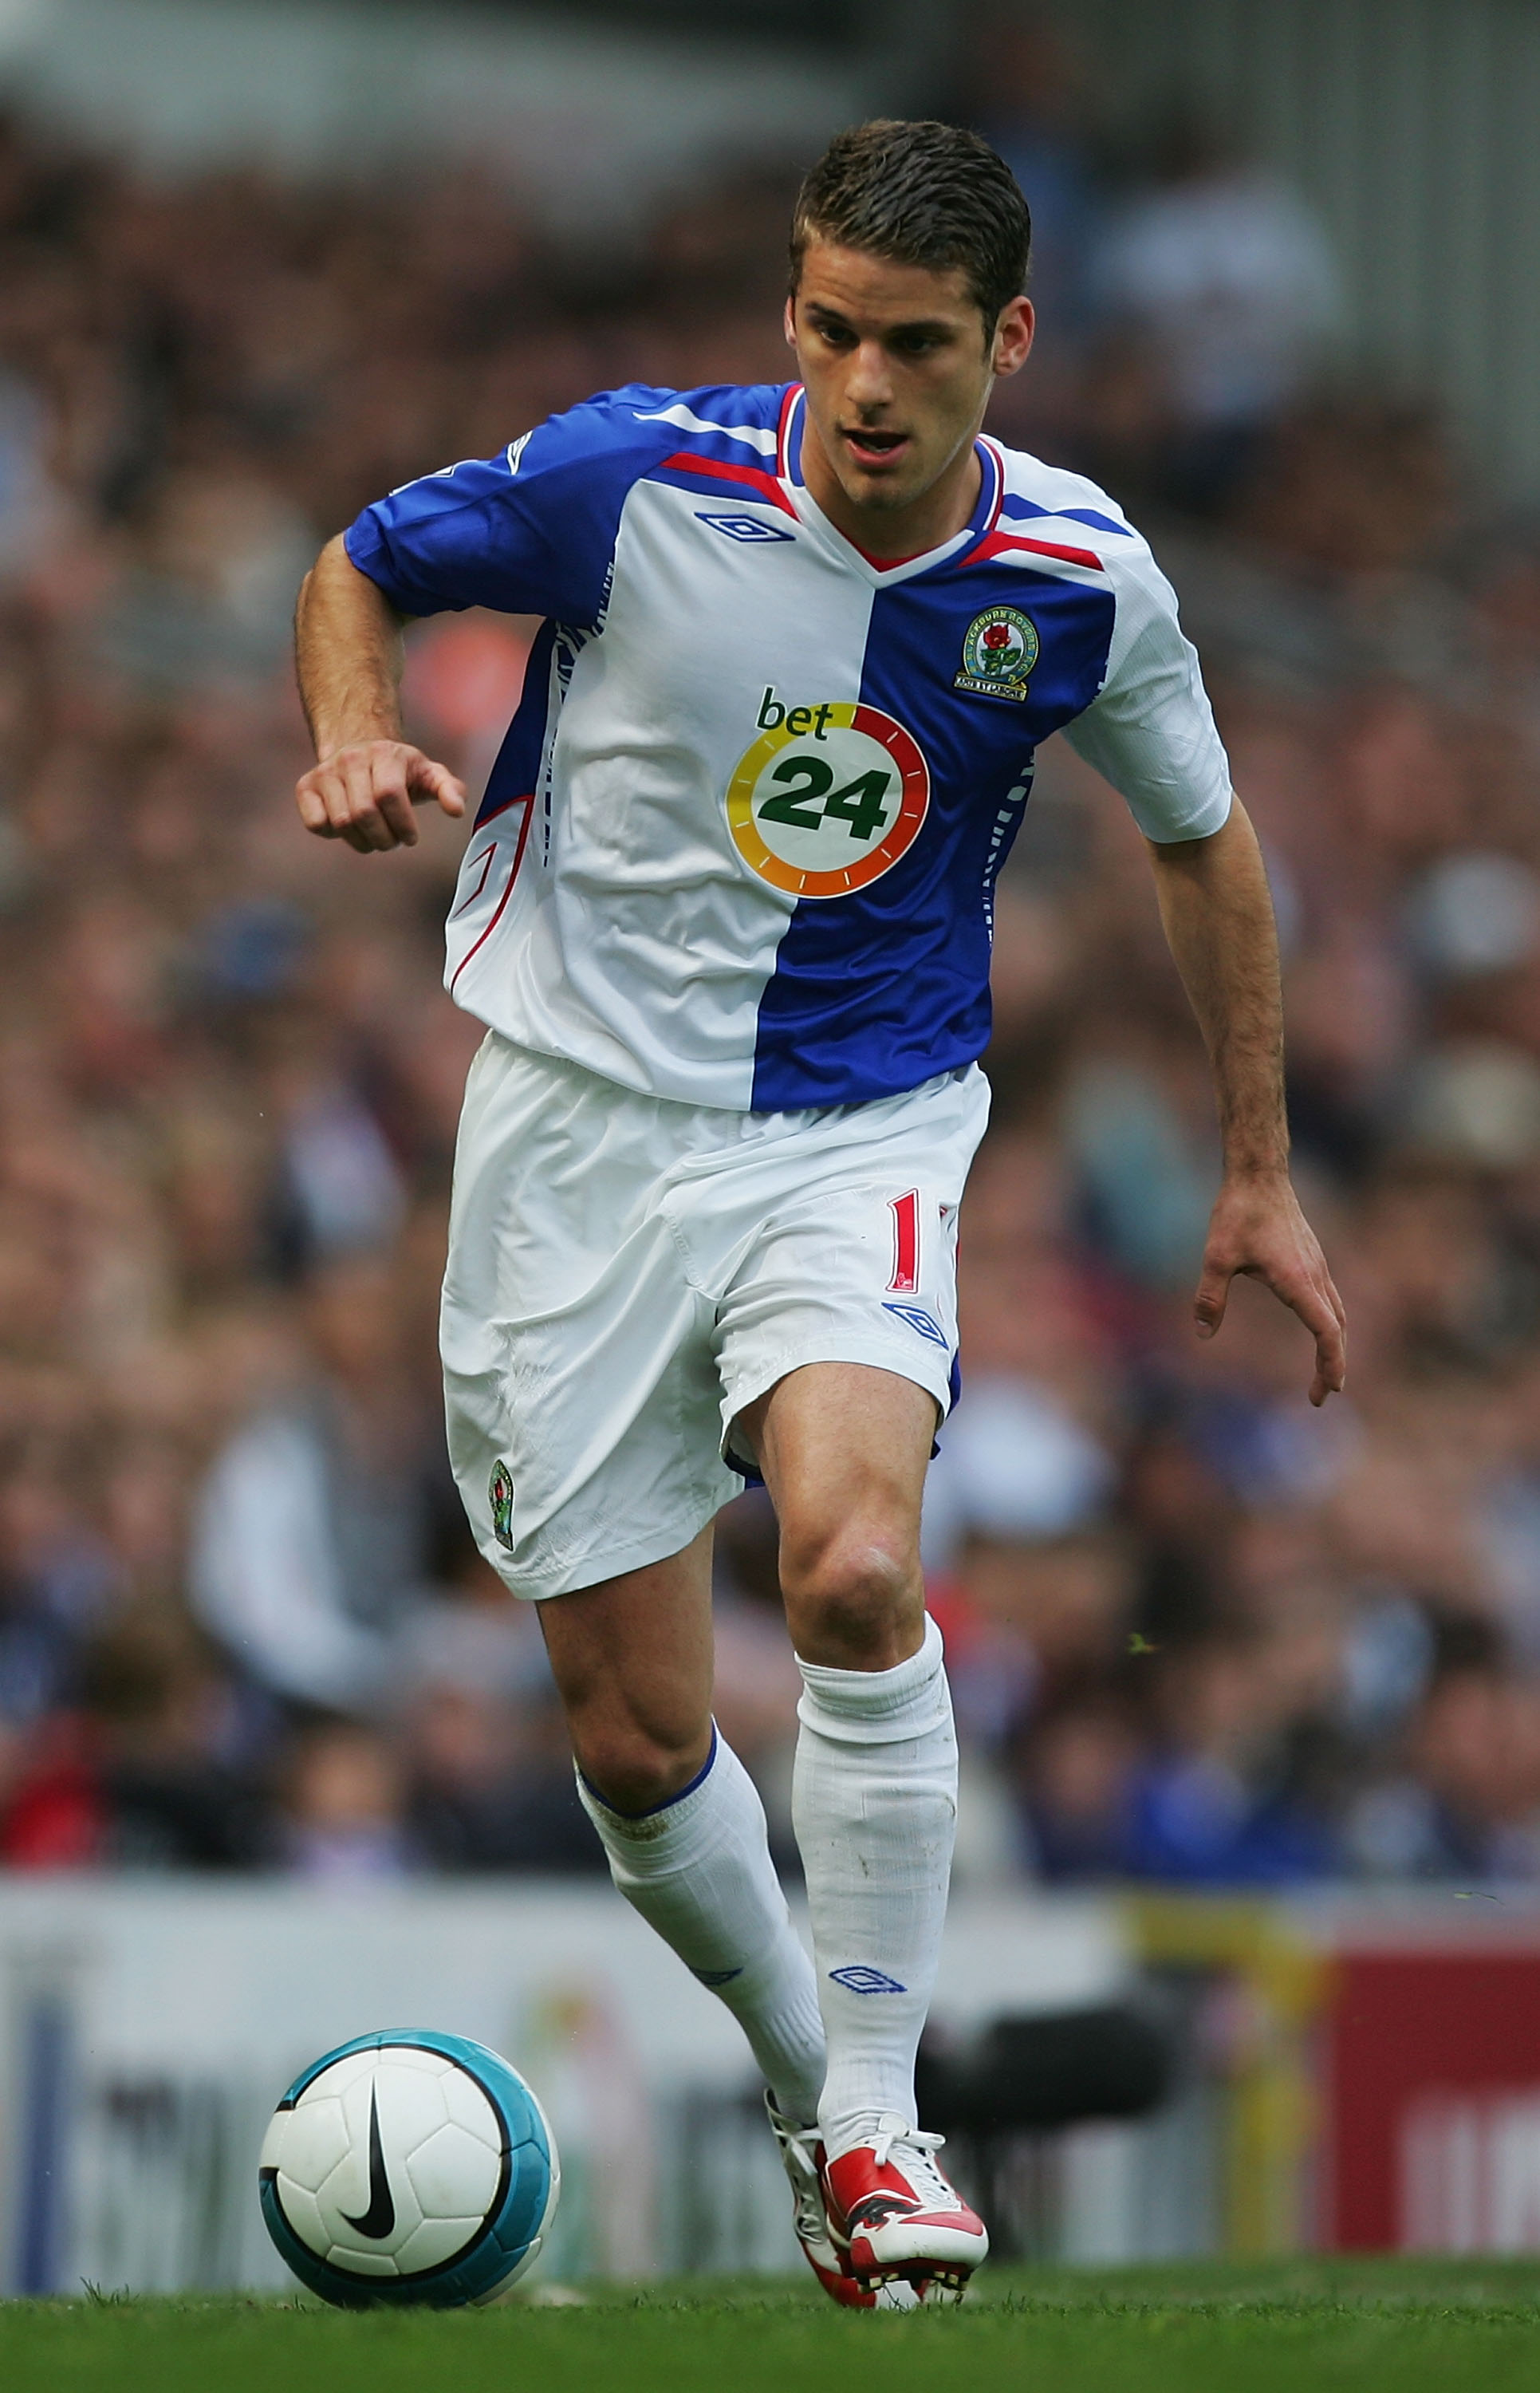 David Bentley rejoins Blackburn on loan from Tottenham – in time to face former club Arsenal